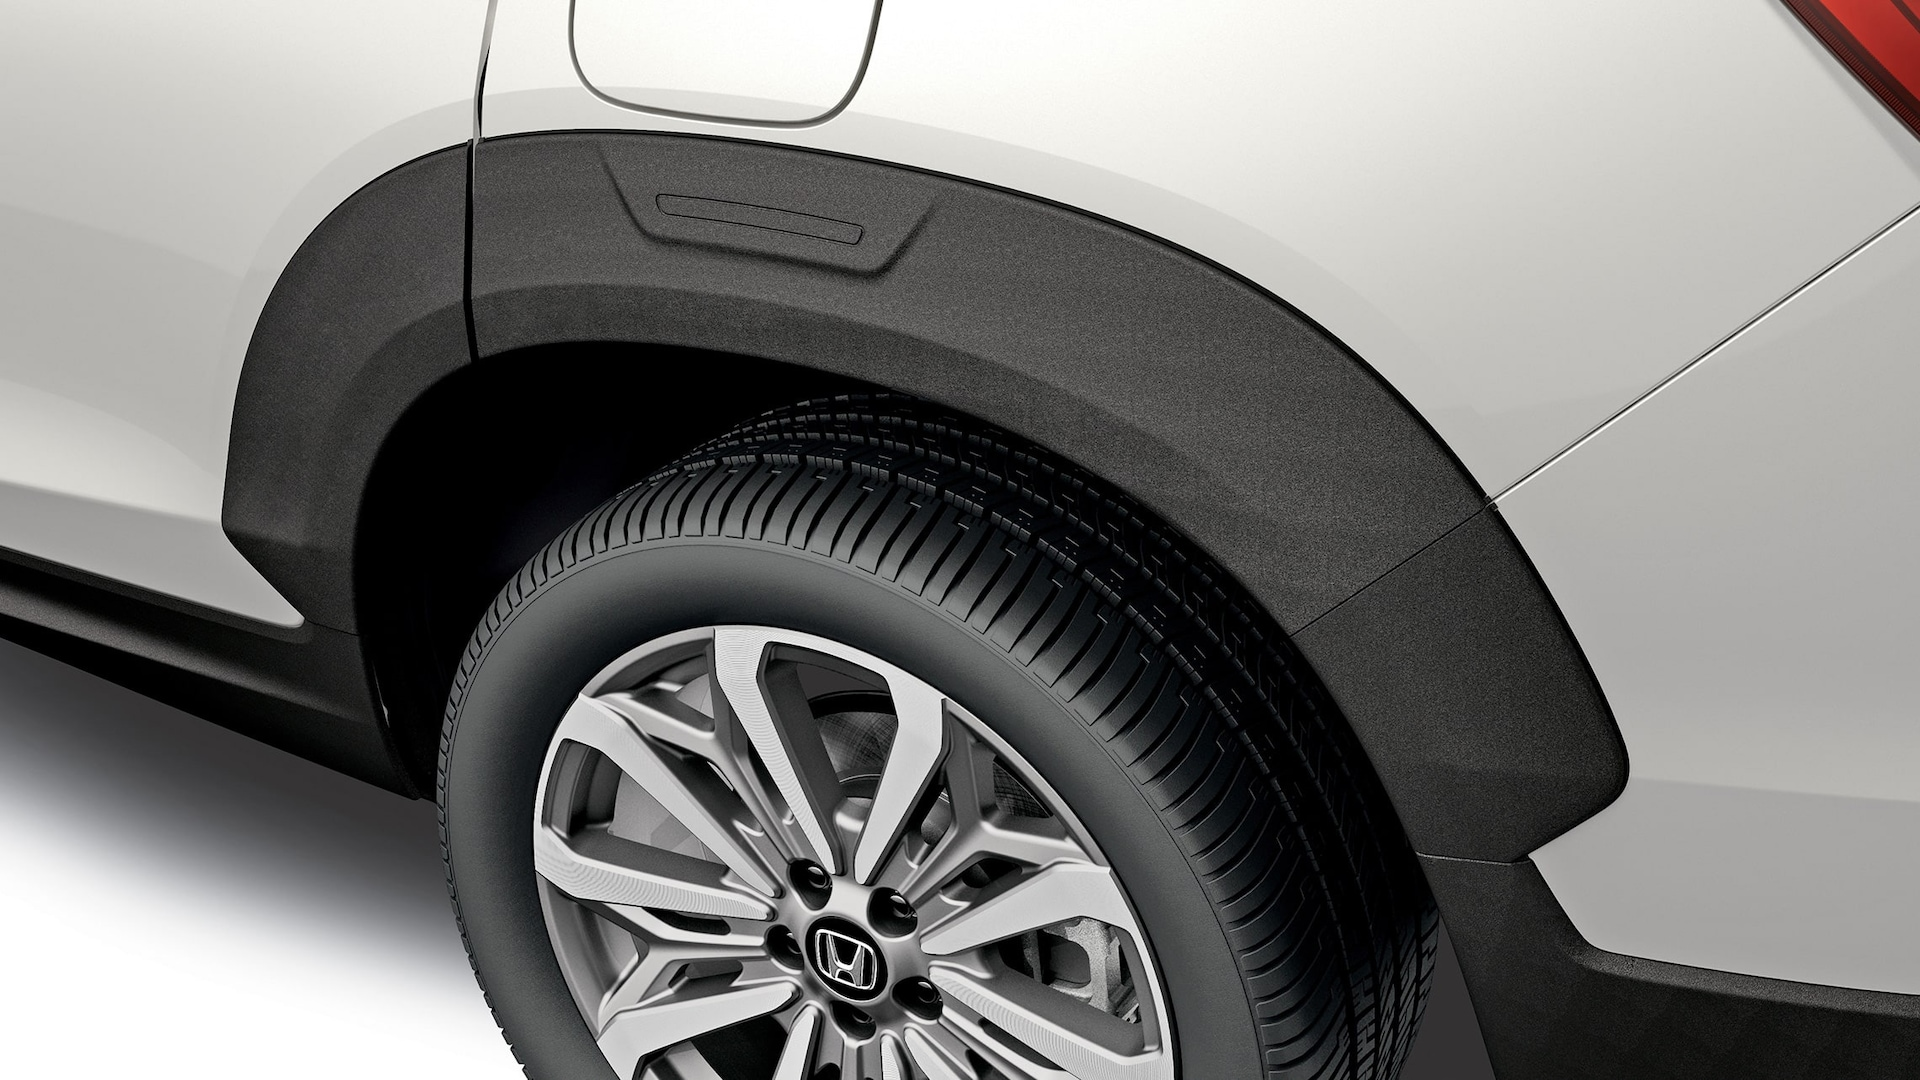 Detail of accessory fender flare on the 2020 Honda Passport.